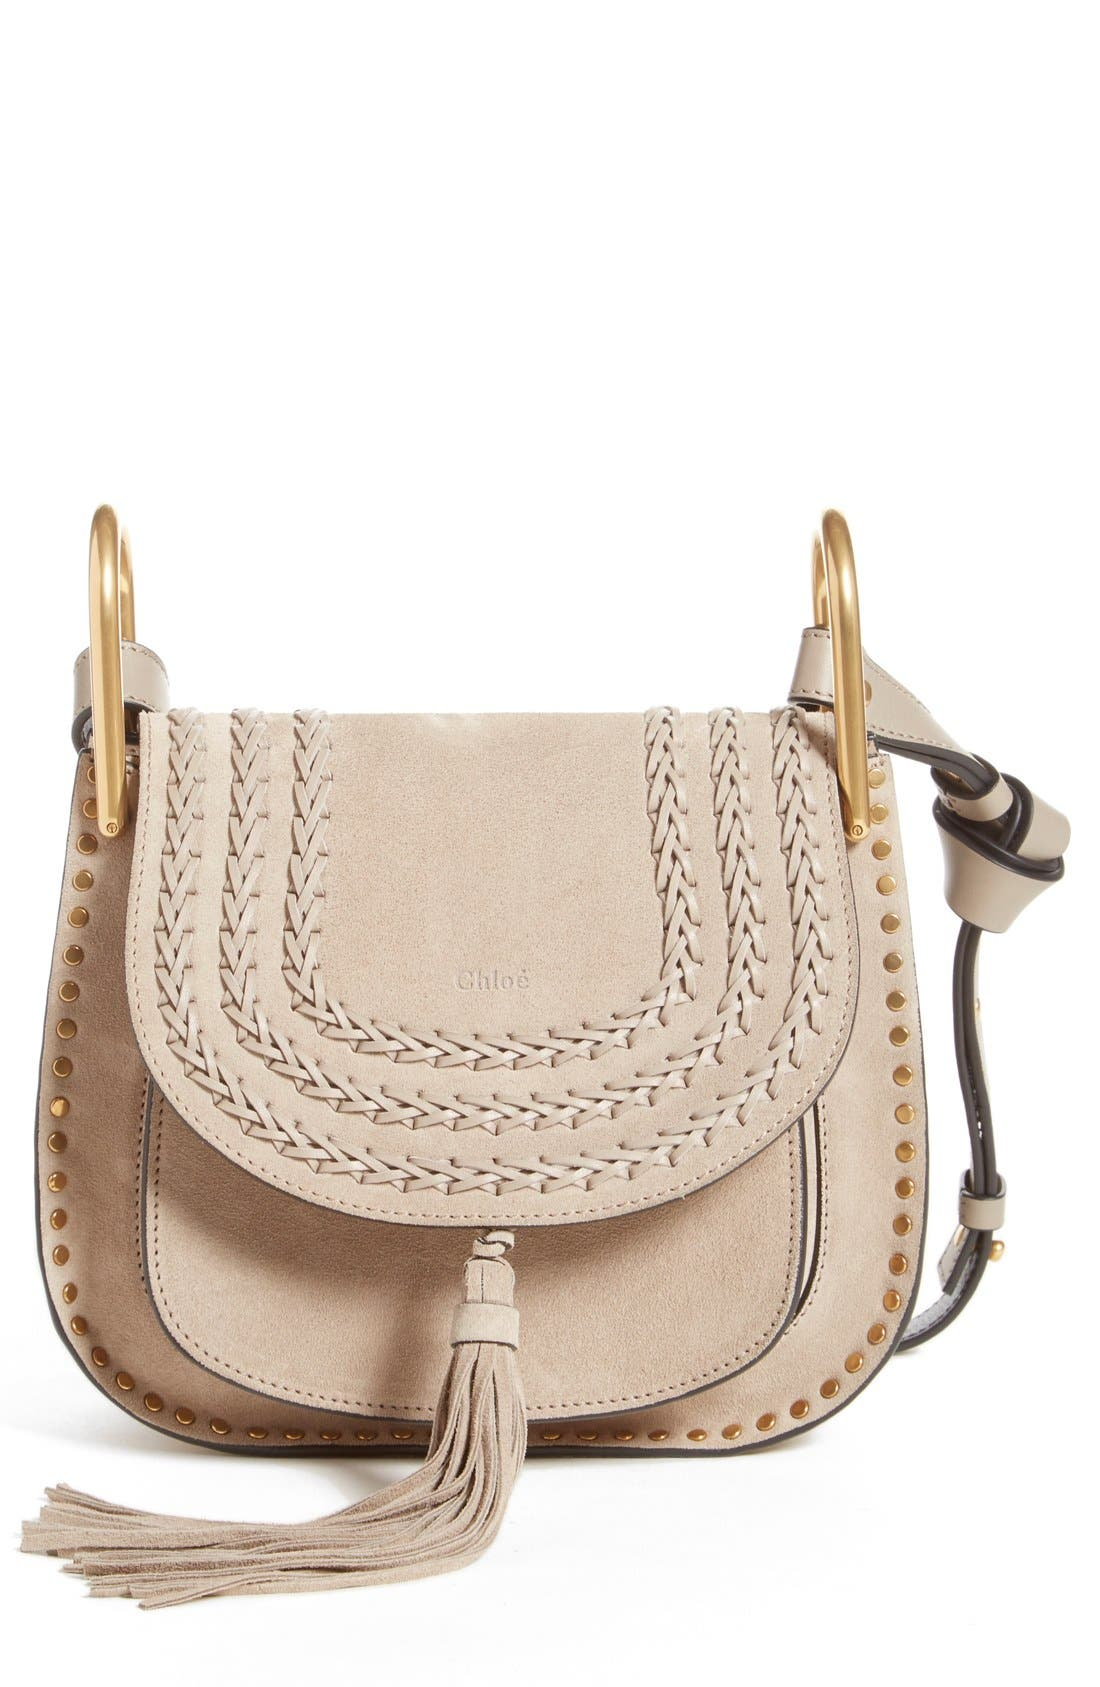 'Small Hudson' Shoulder Bag,                         Main,                         color, Motty Grey